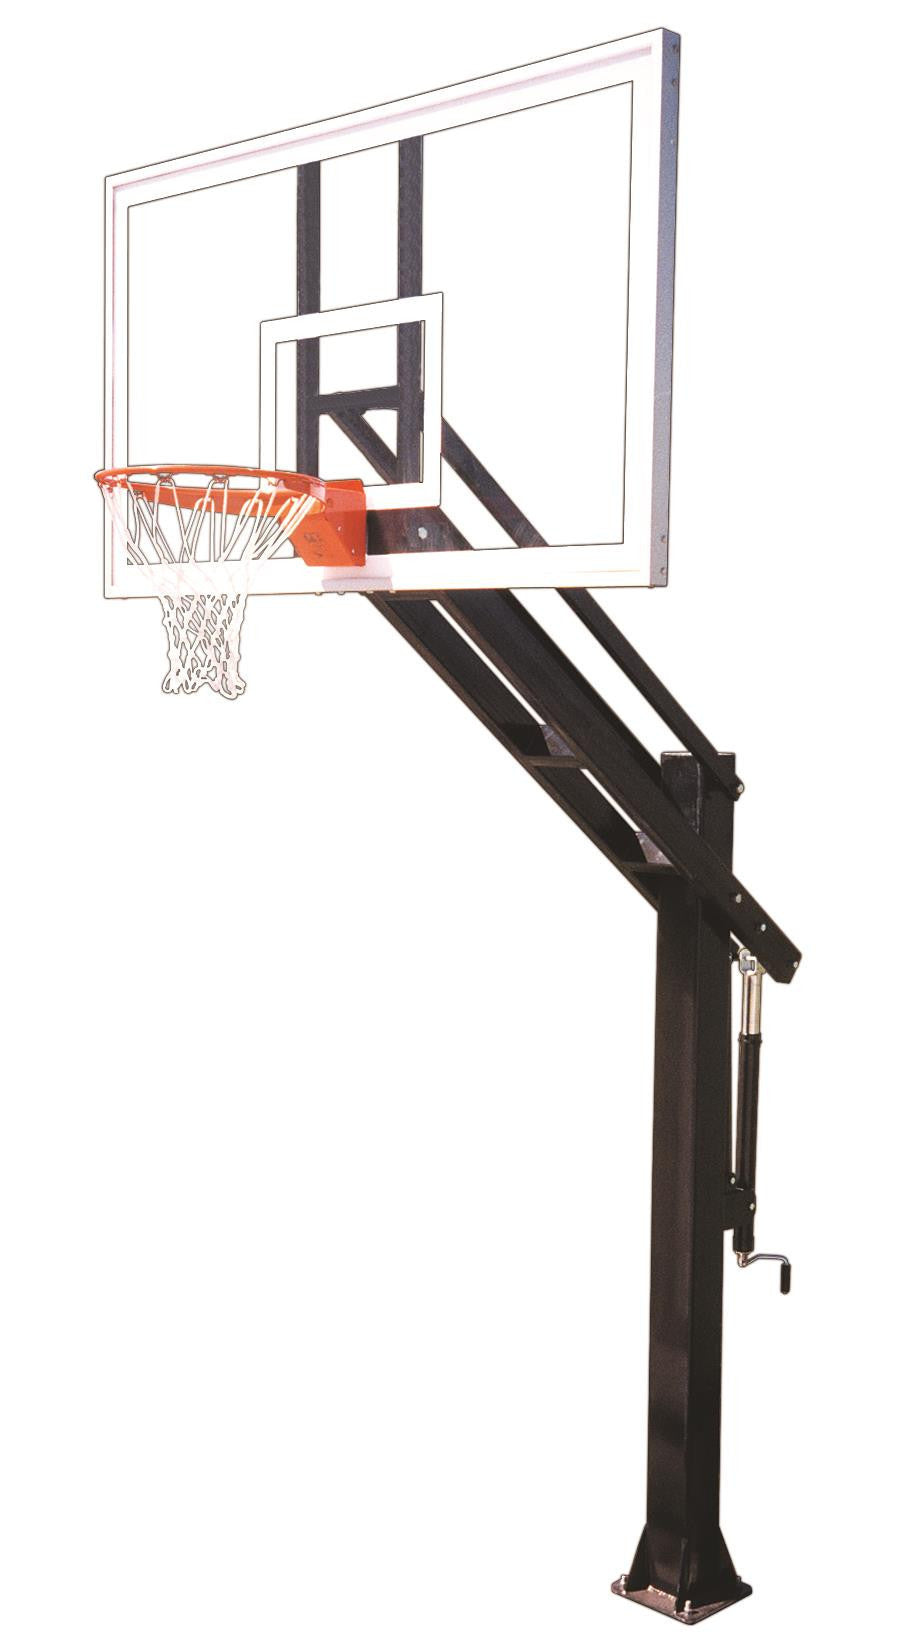 First Team Titan Arena In Ground Outdoor Adjustable Basketball Hoop 72 inch Tempered Glass